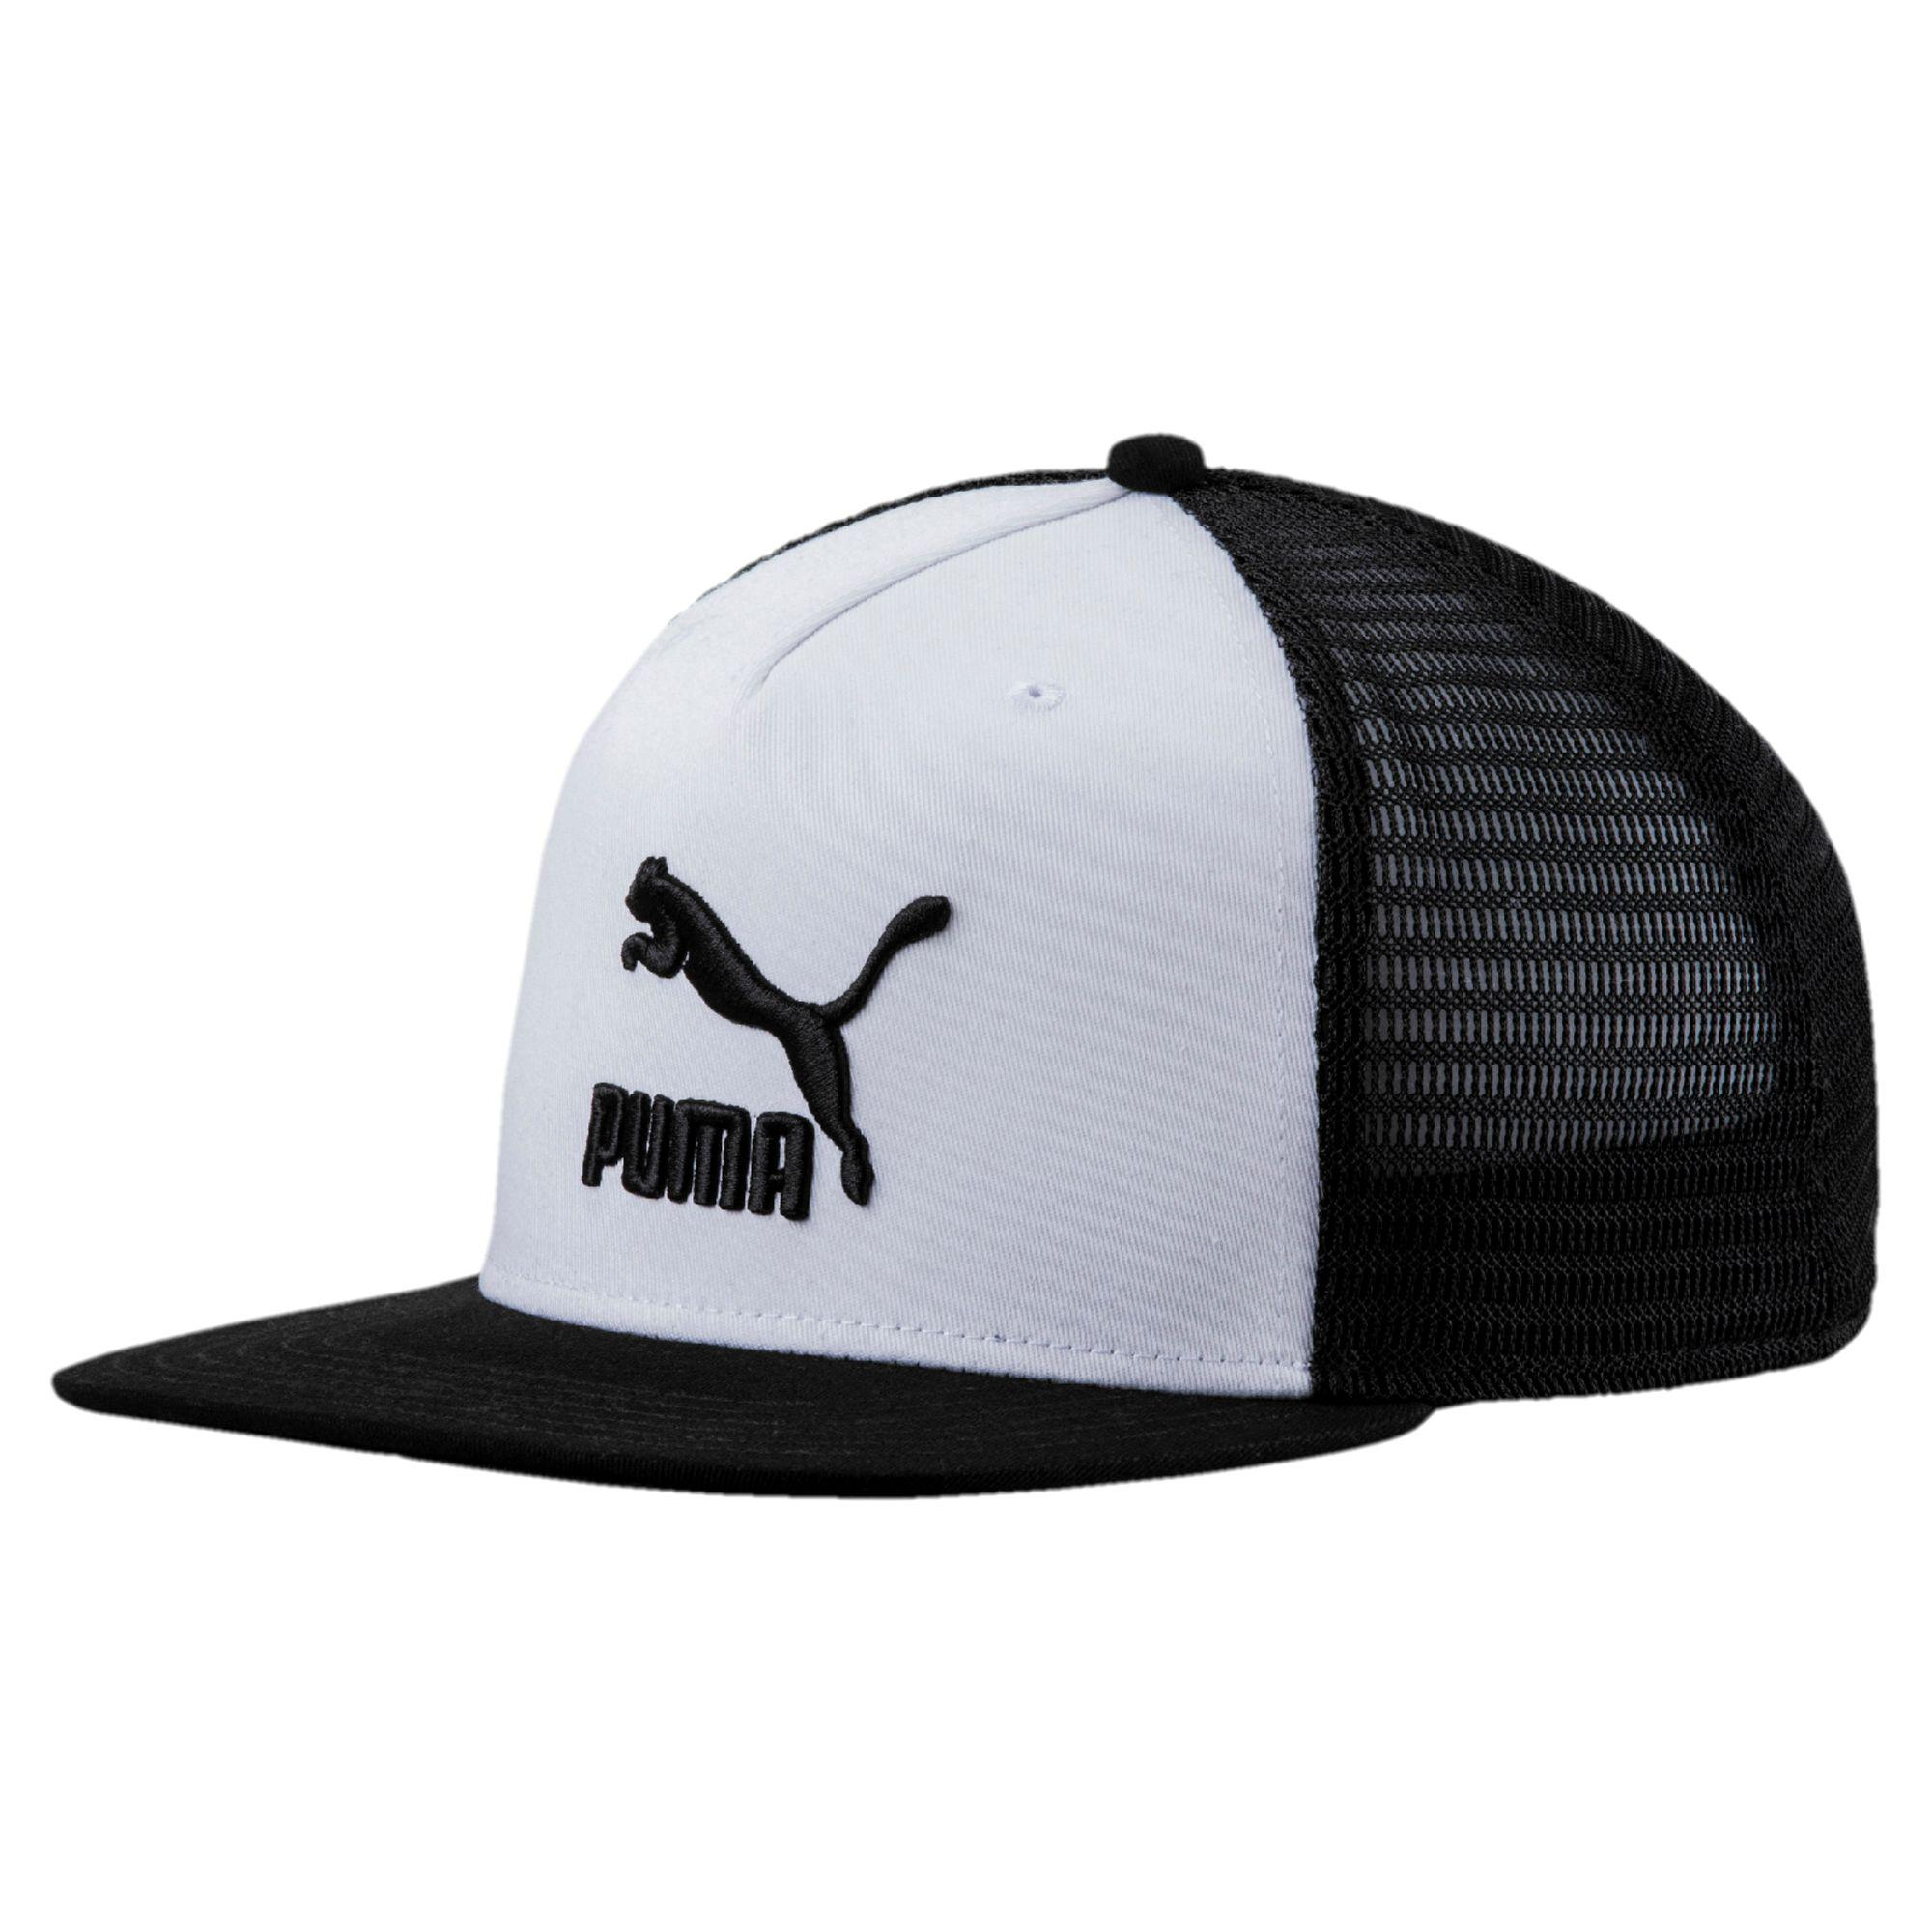 26584629db0 wholesale puma. mens black archive trucker hat 50869 31c30